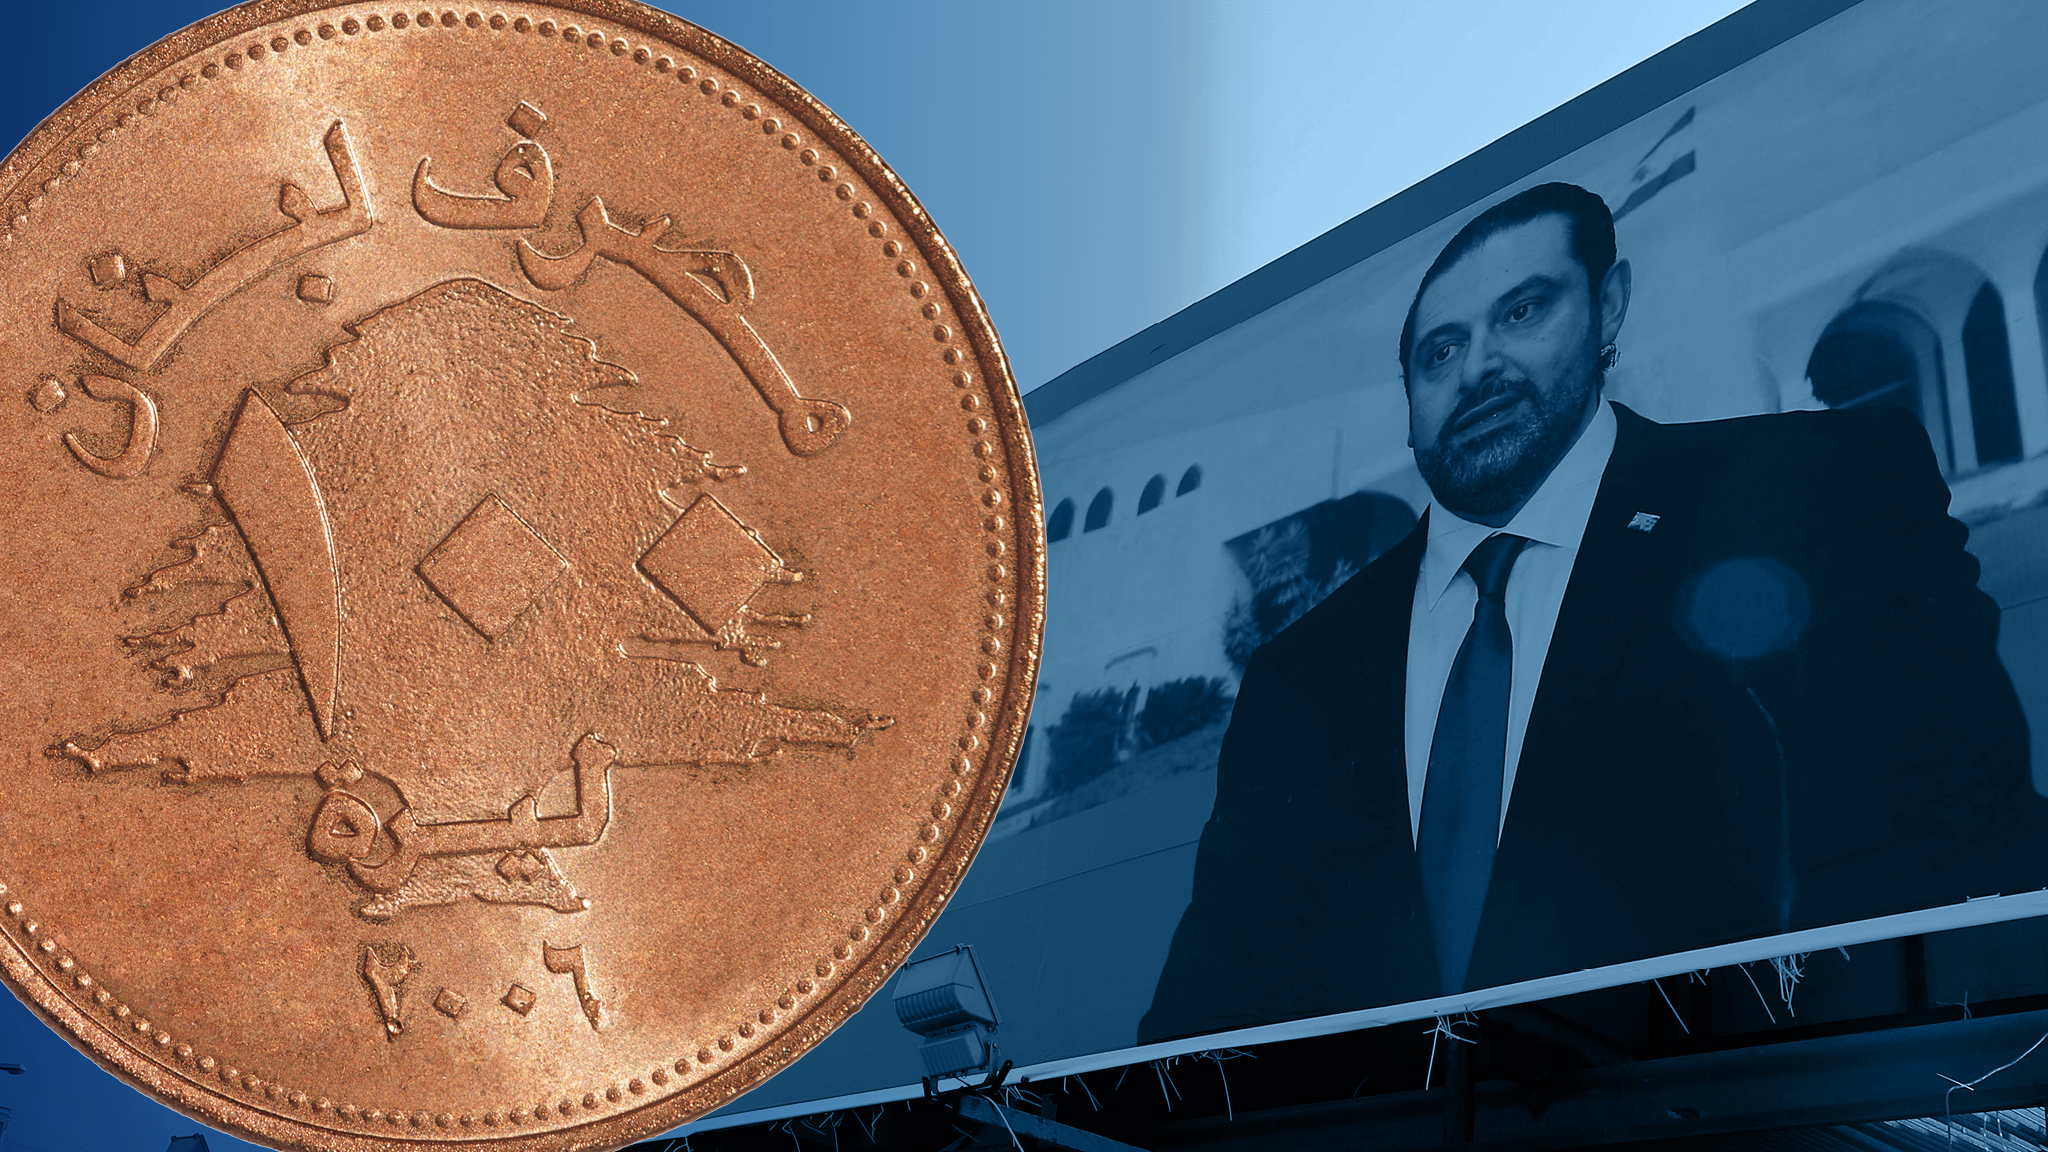 Lebanon tension spurs questions over Middle East currency pegs